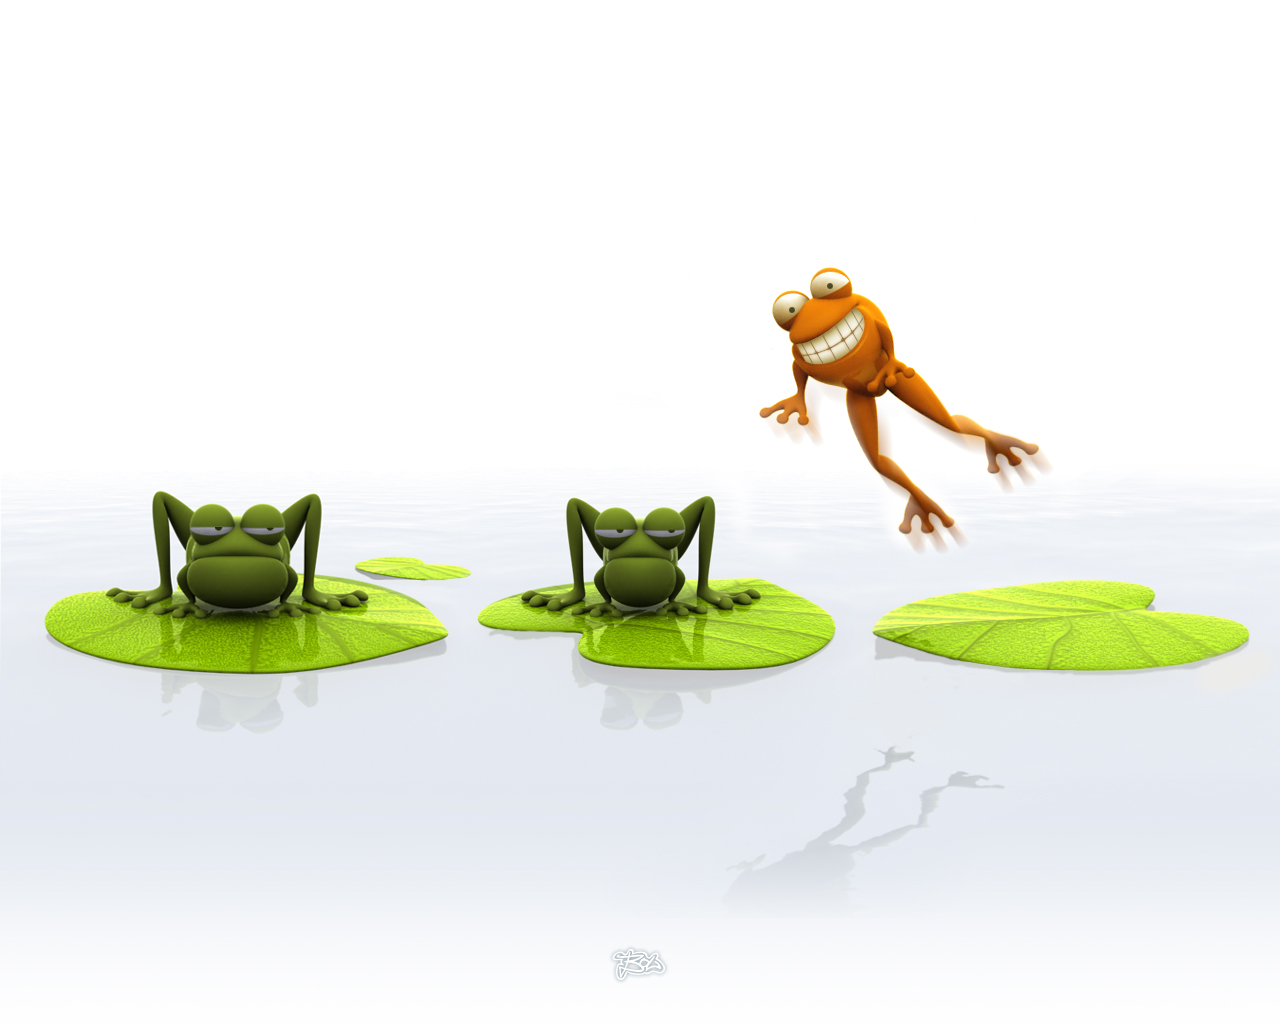 Funny Three Frog Wallpaper